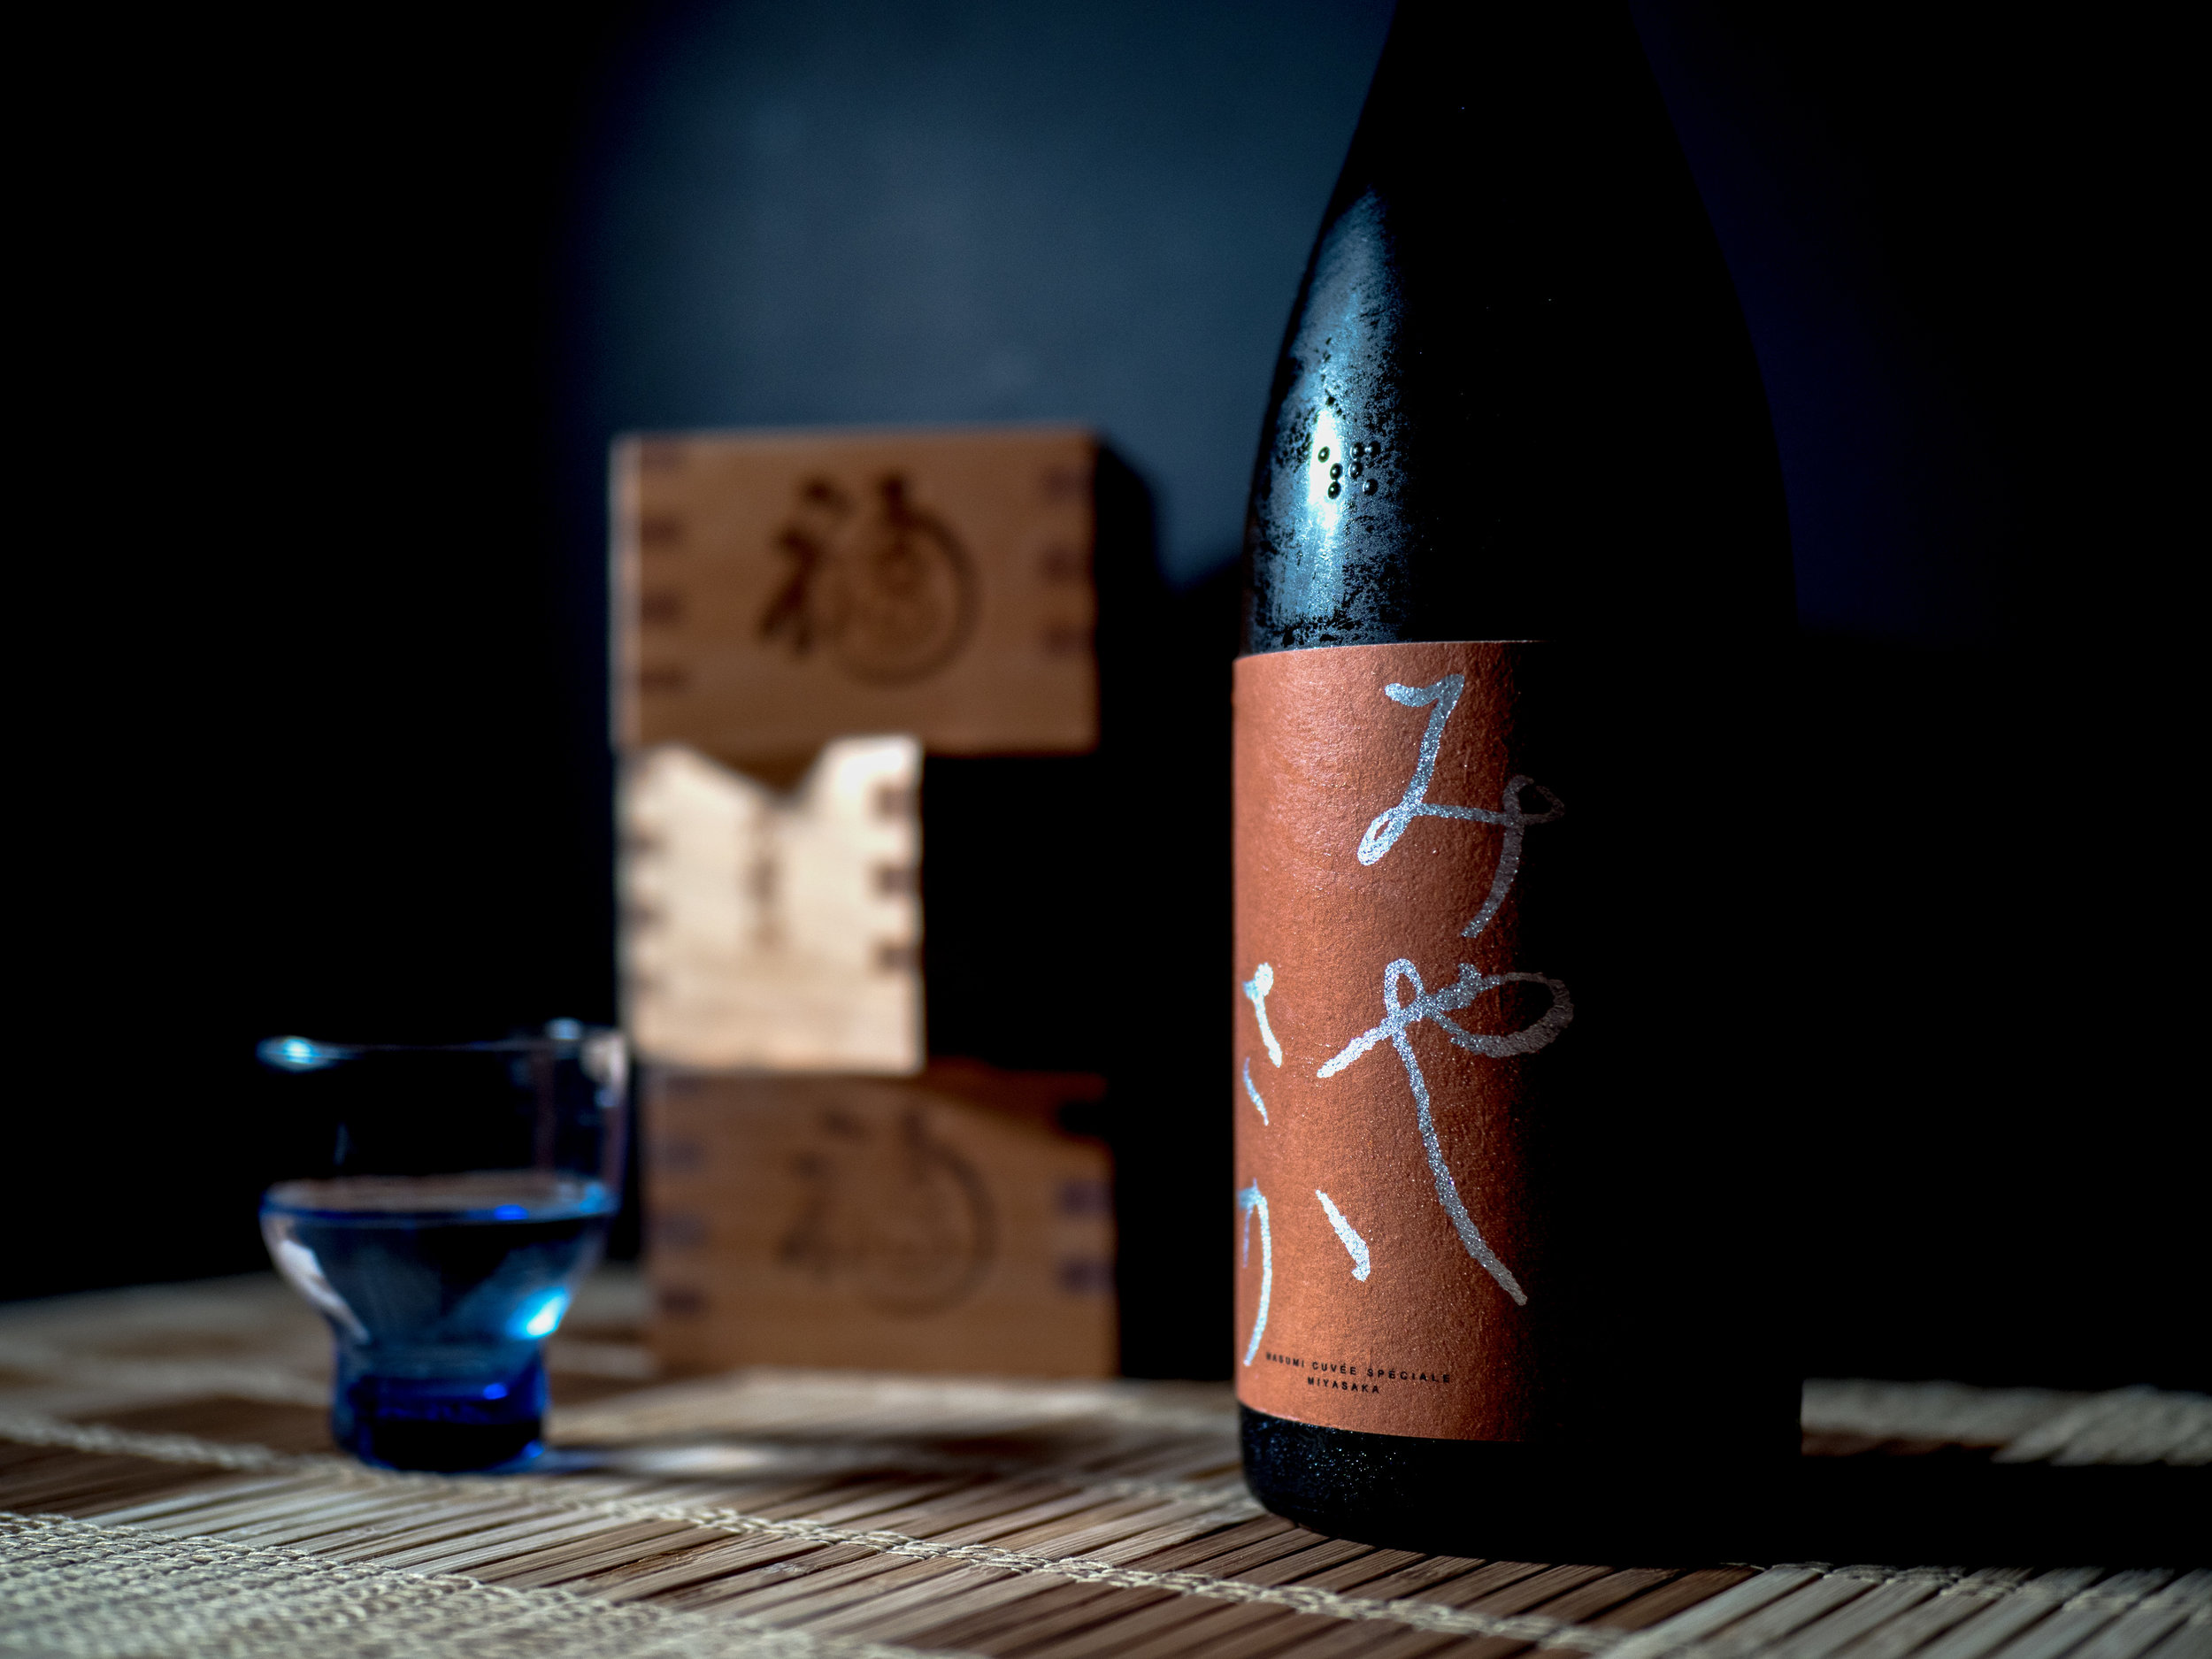 Musings by the Masu - Sake Science 101 - Low Key Sake Bottle